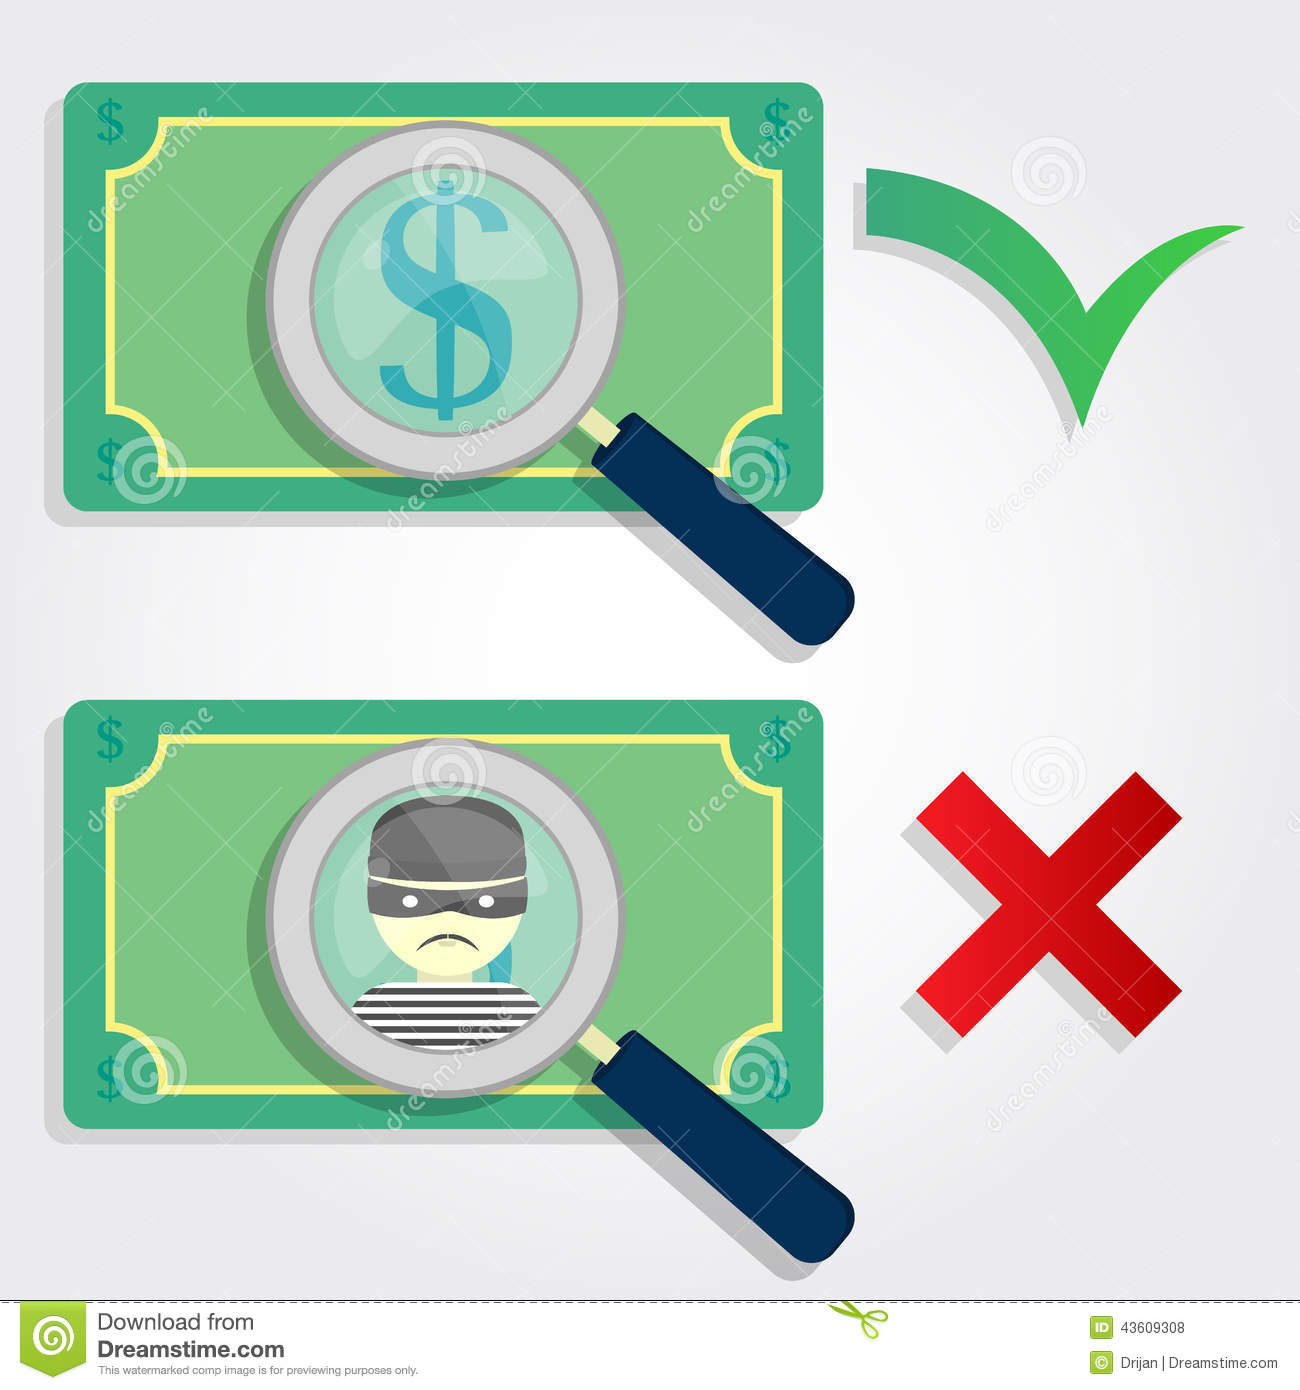 Right and wrong money